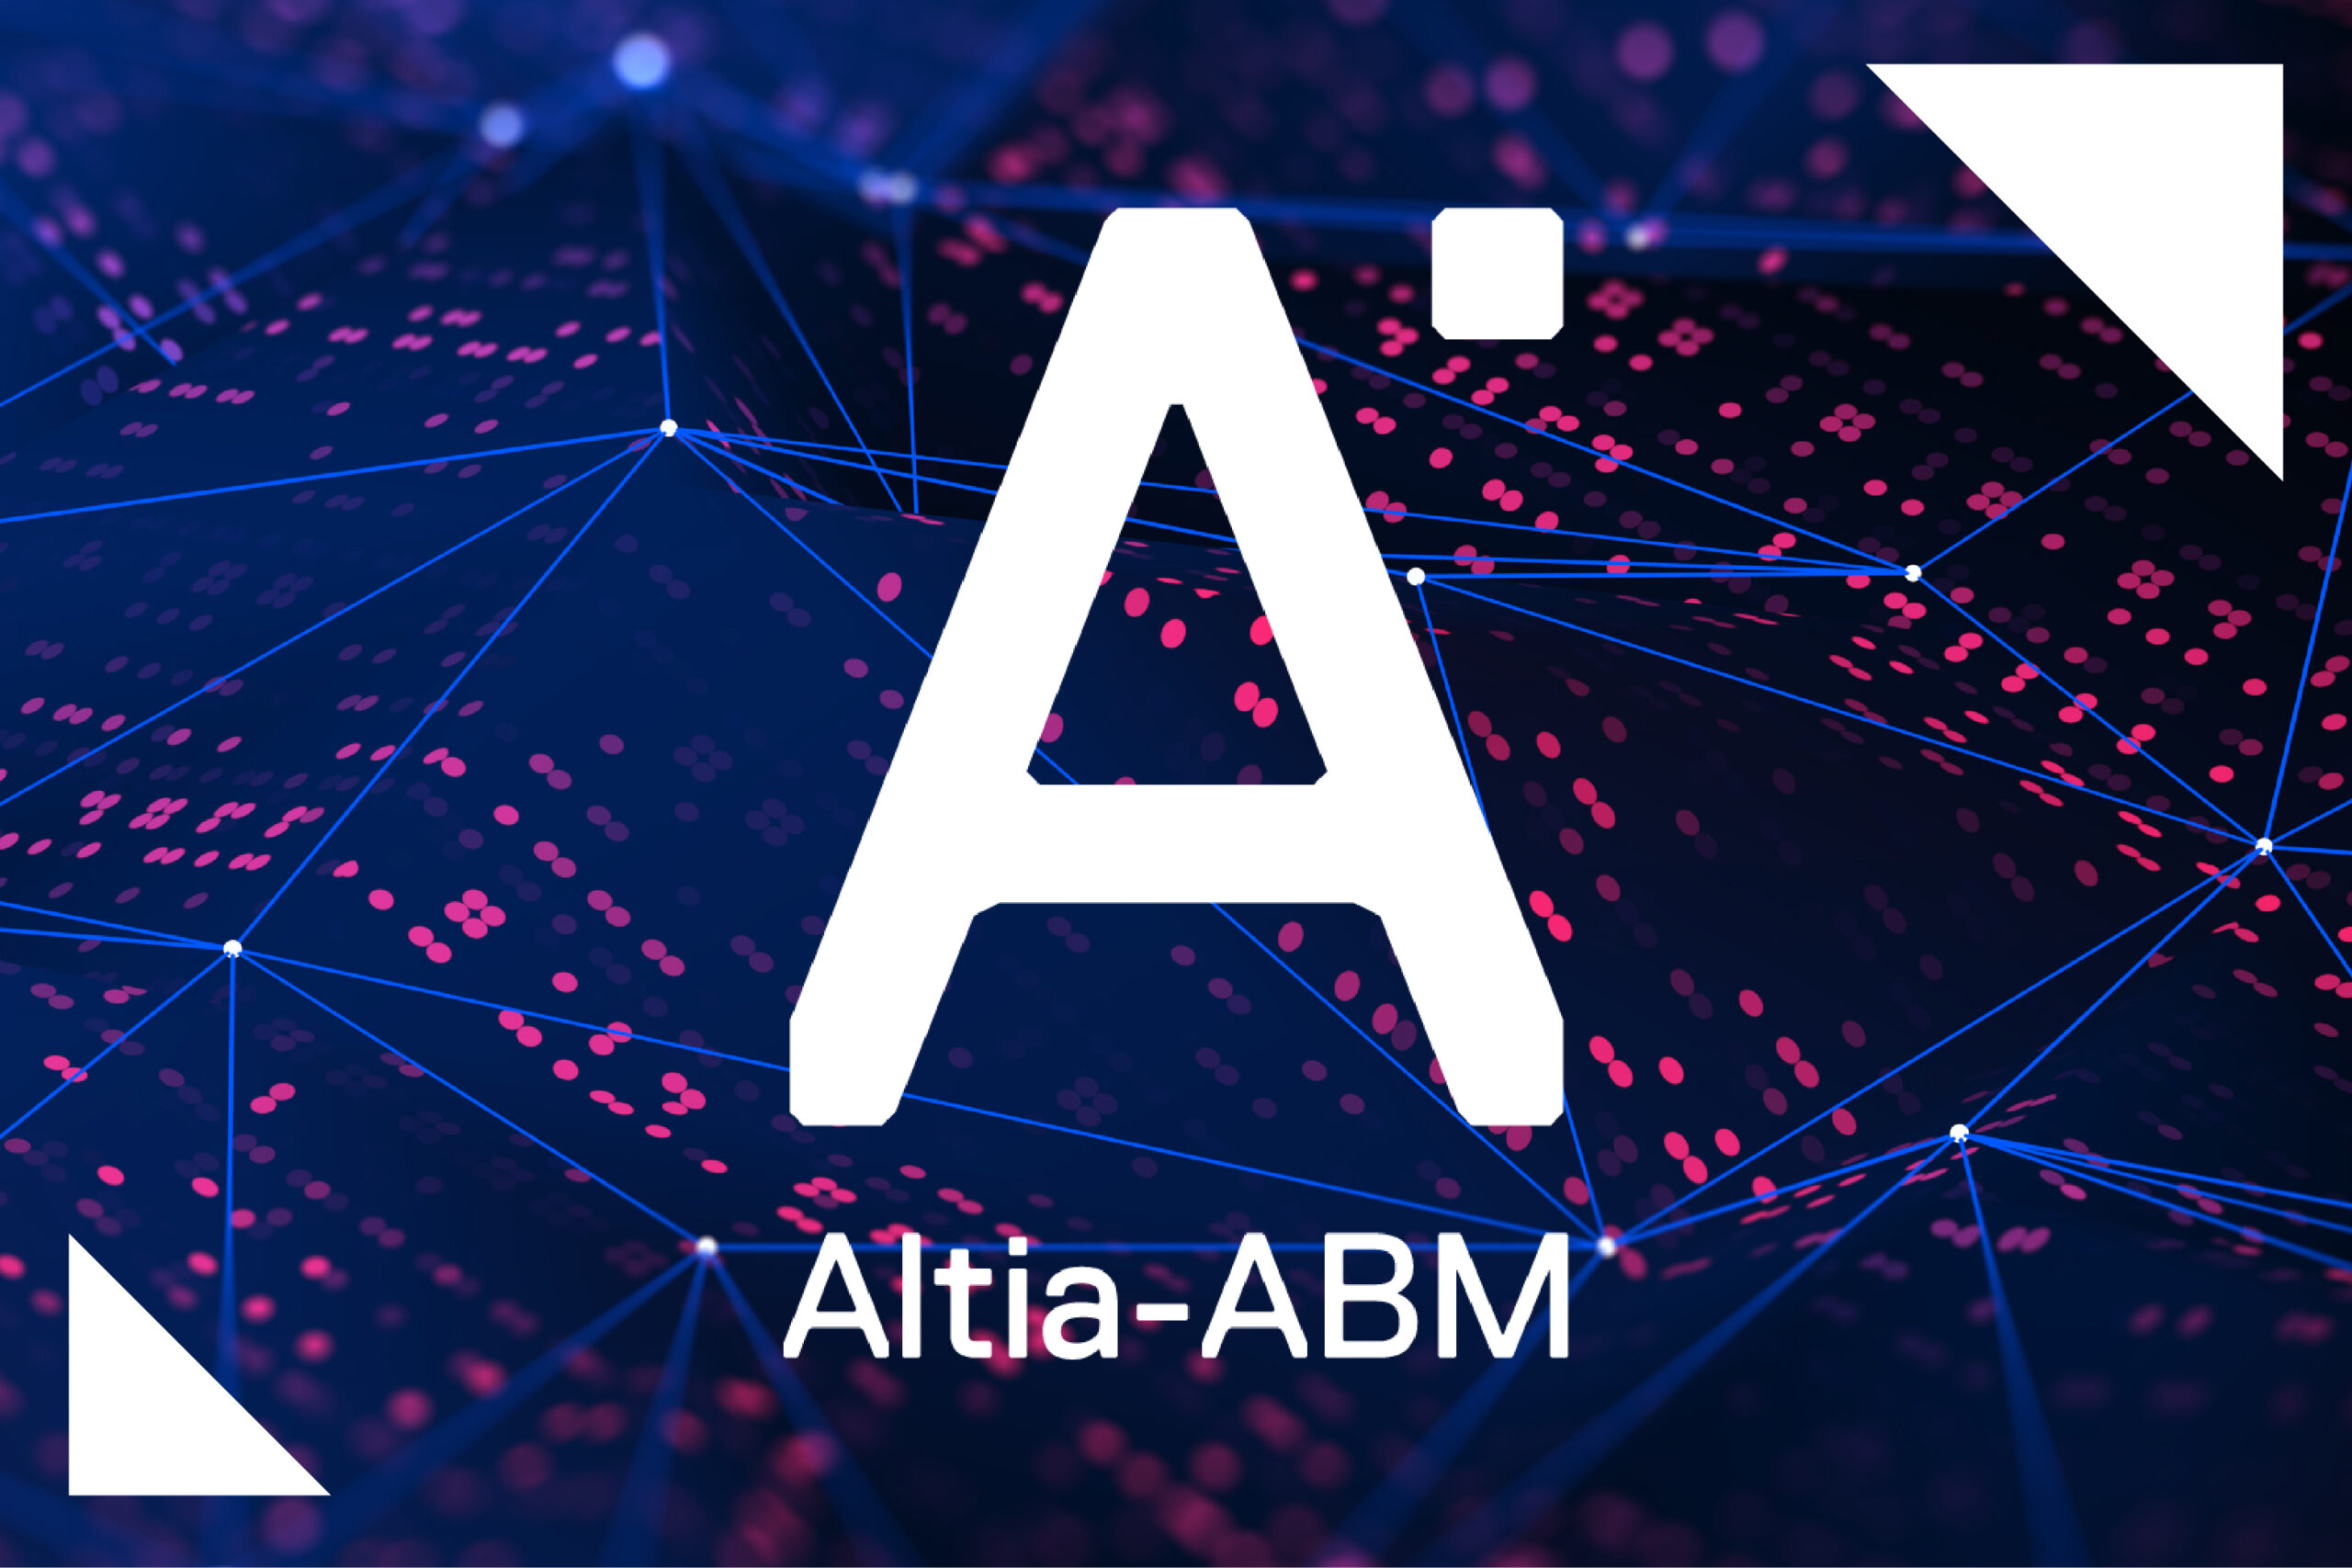 NorthEdge invests in investigation software specialist Altia-ABM